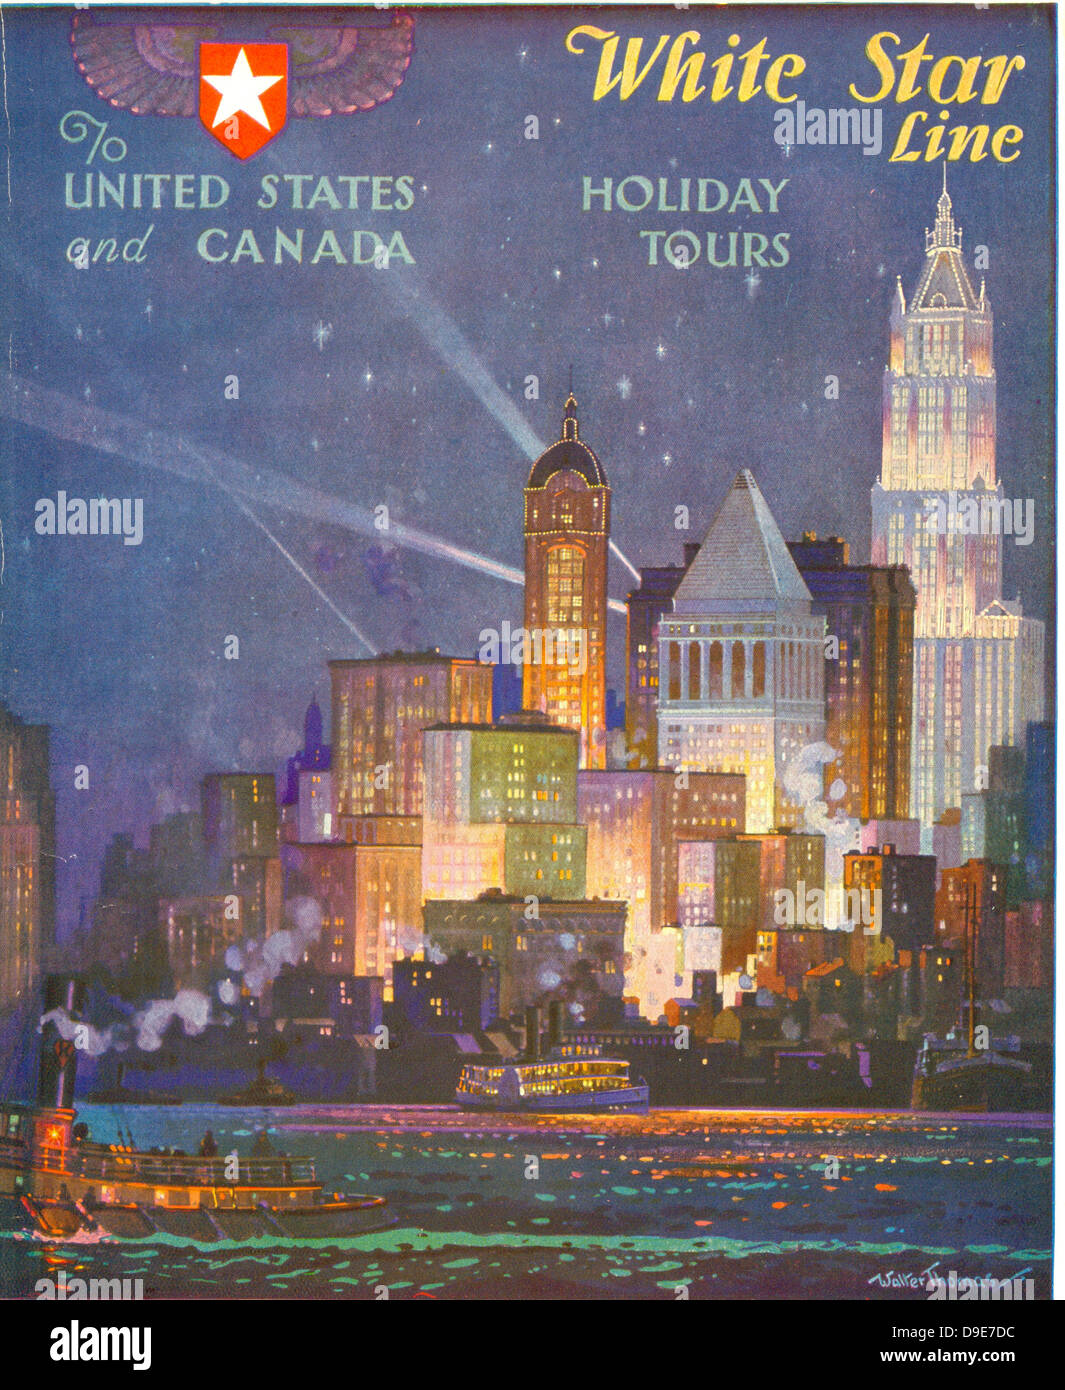 Advertisement leaflet for White Star Line Holiday Tours to the United States and Canada - Stock Image